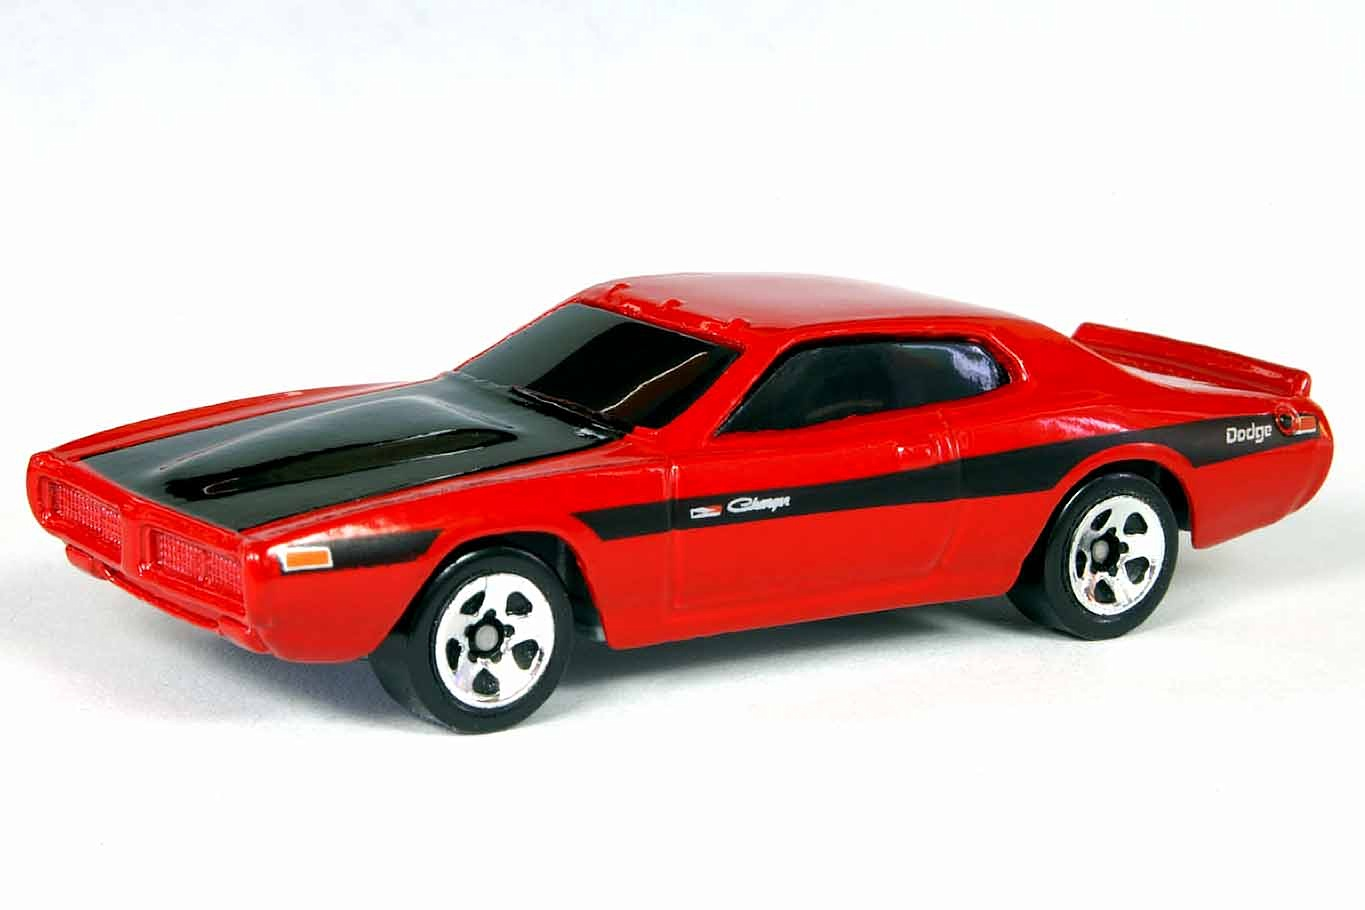 Dodge Charger   Hot Wheels Wiki   FANDOM powered by Wikia